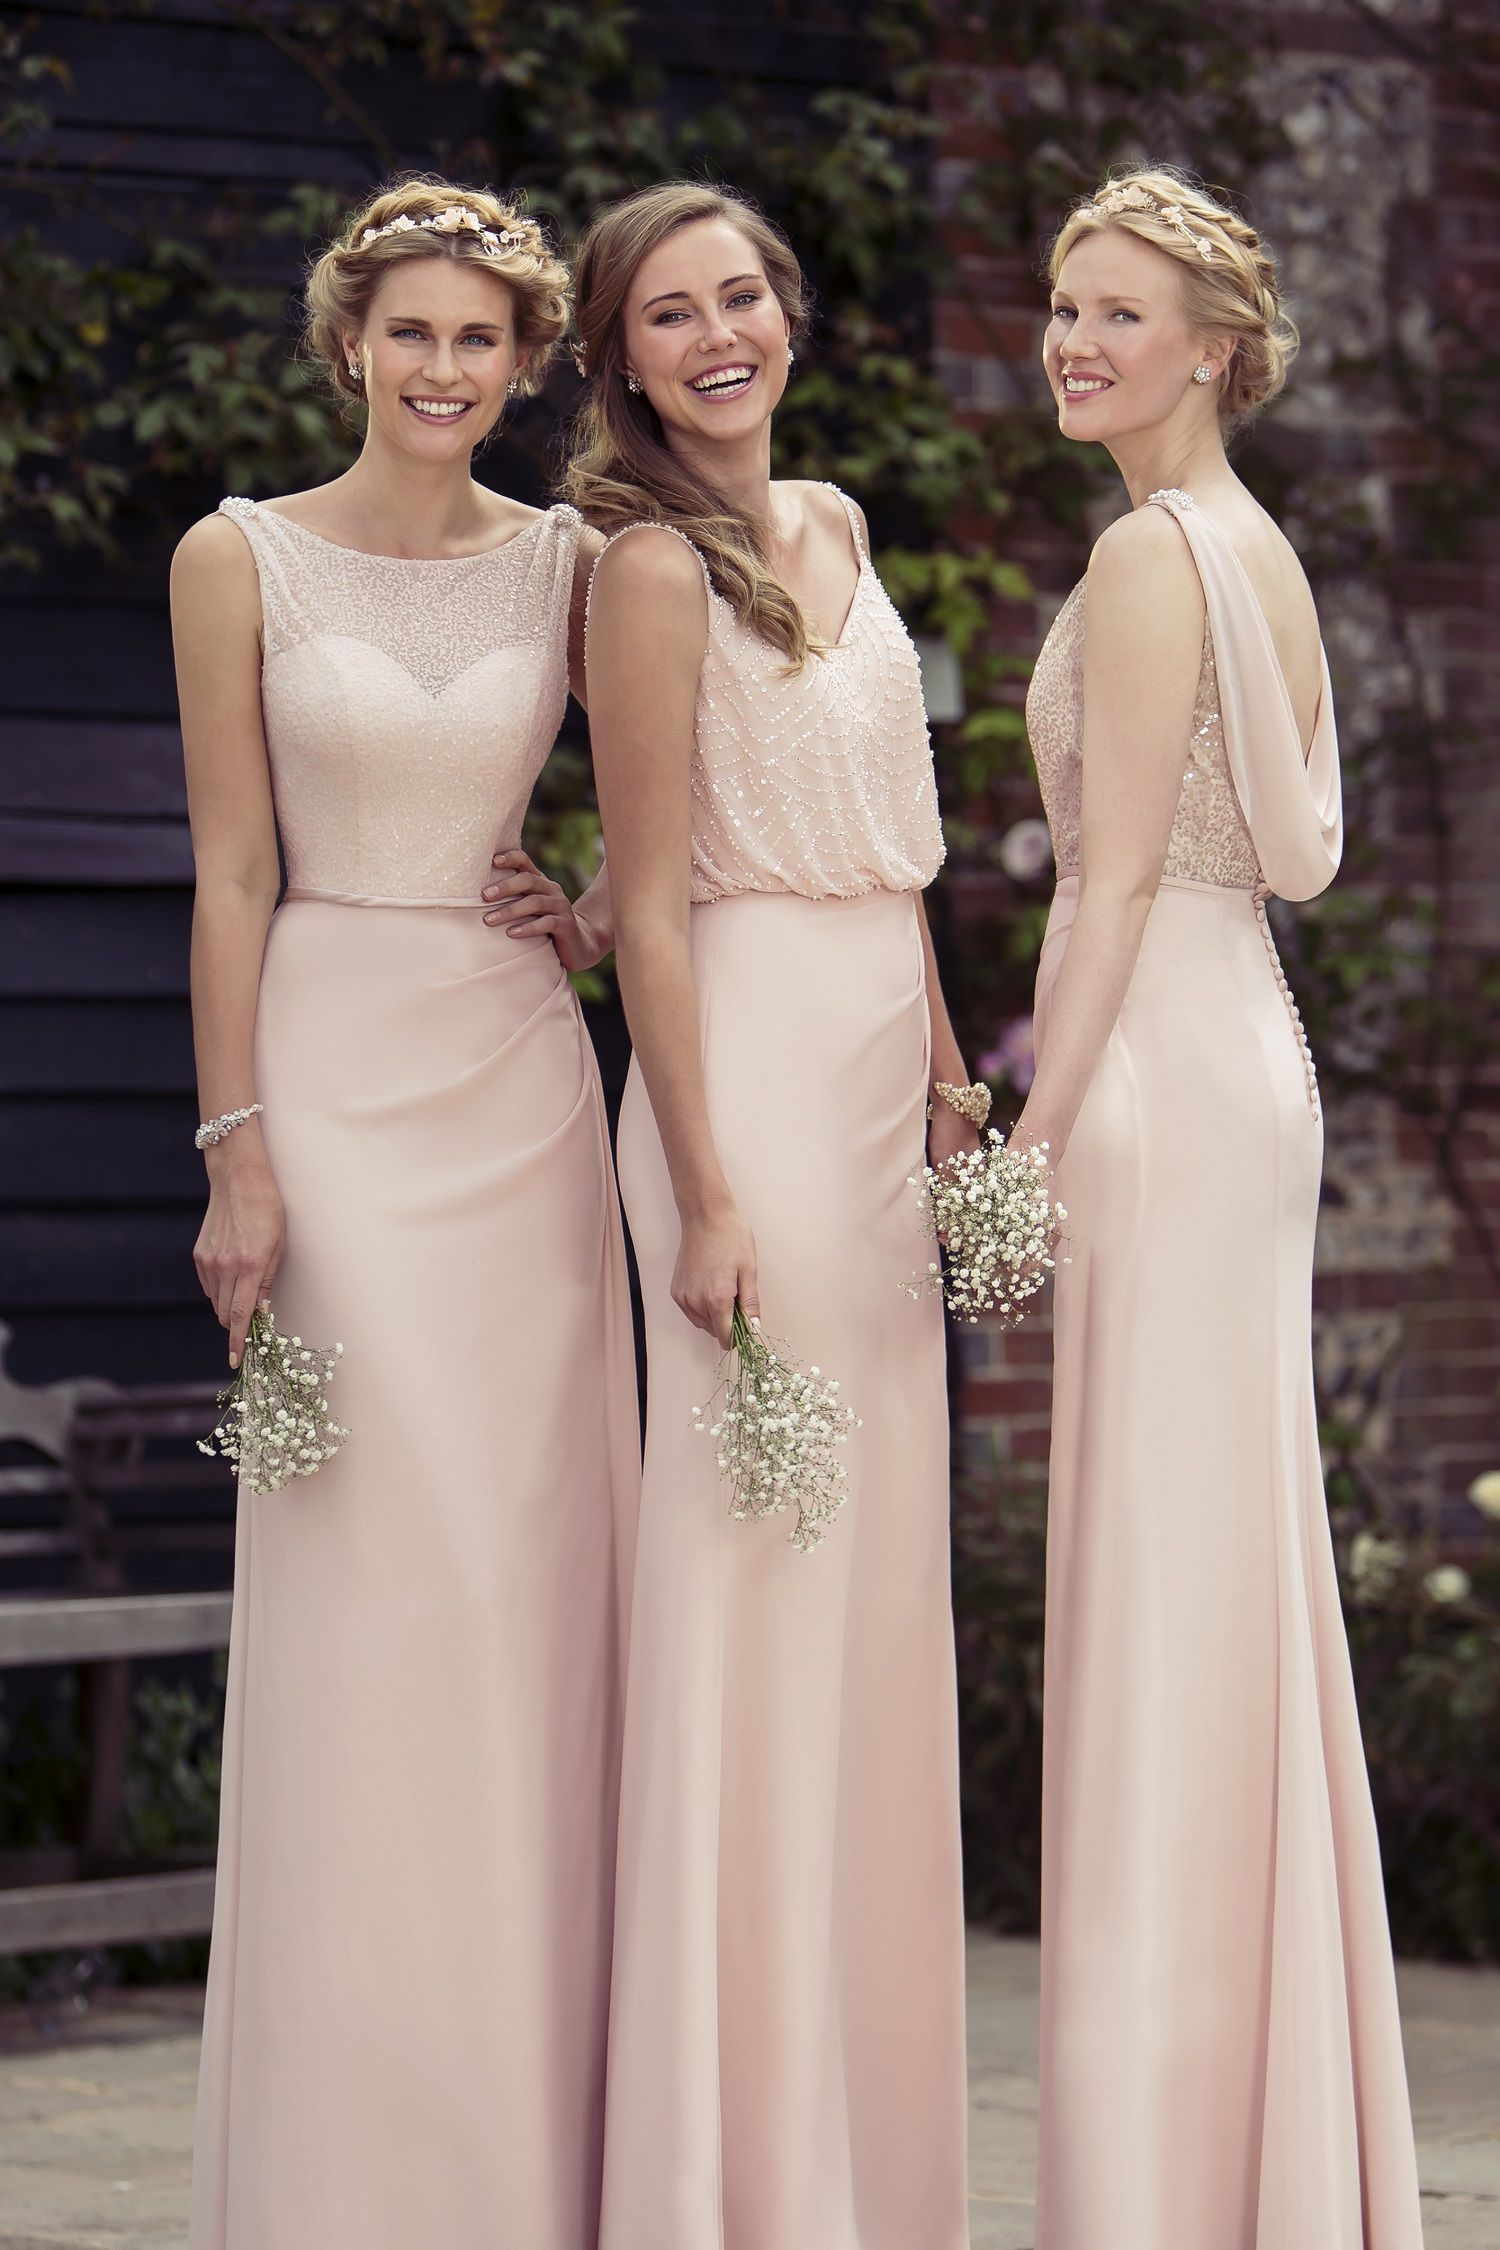 Lindy Hop - Bridesmaid Dresses - Not Another Boring Bridesmaid Dress ...